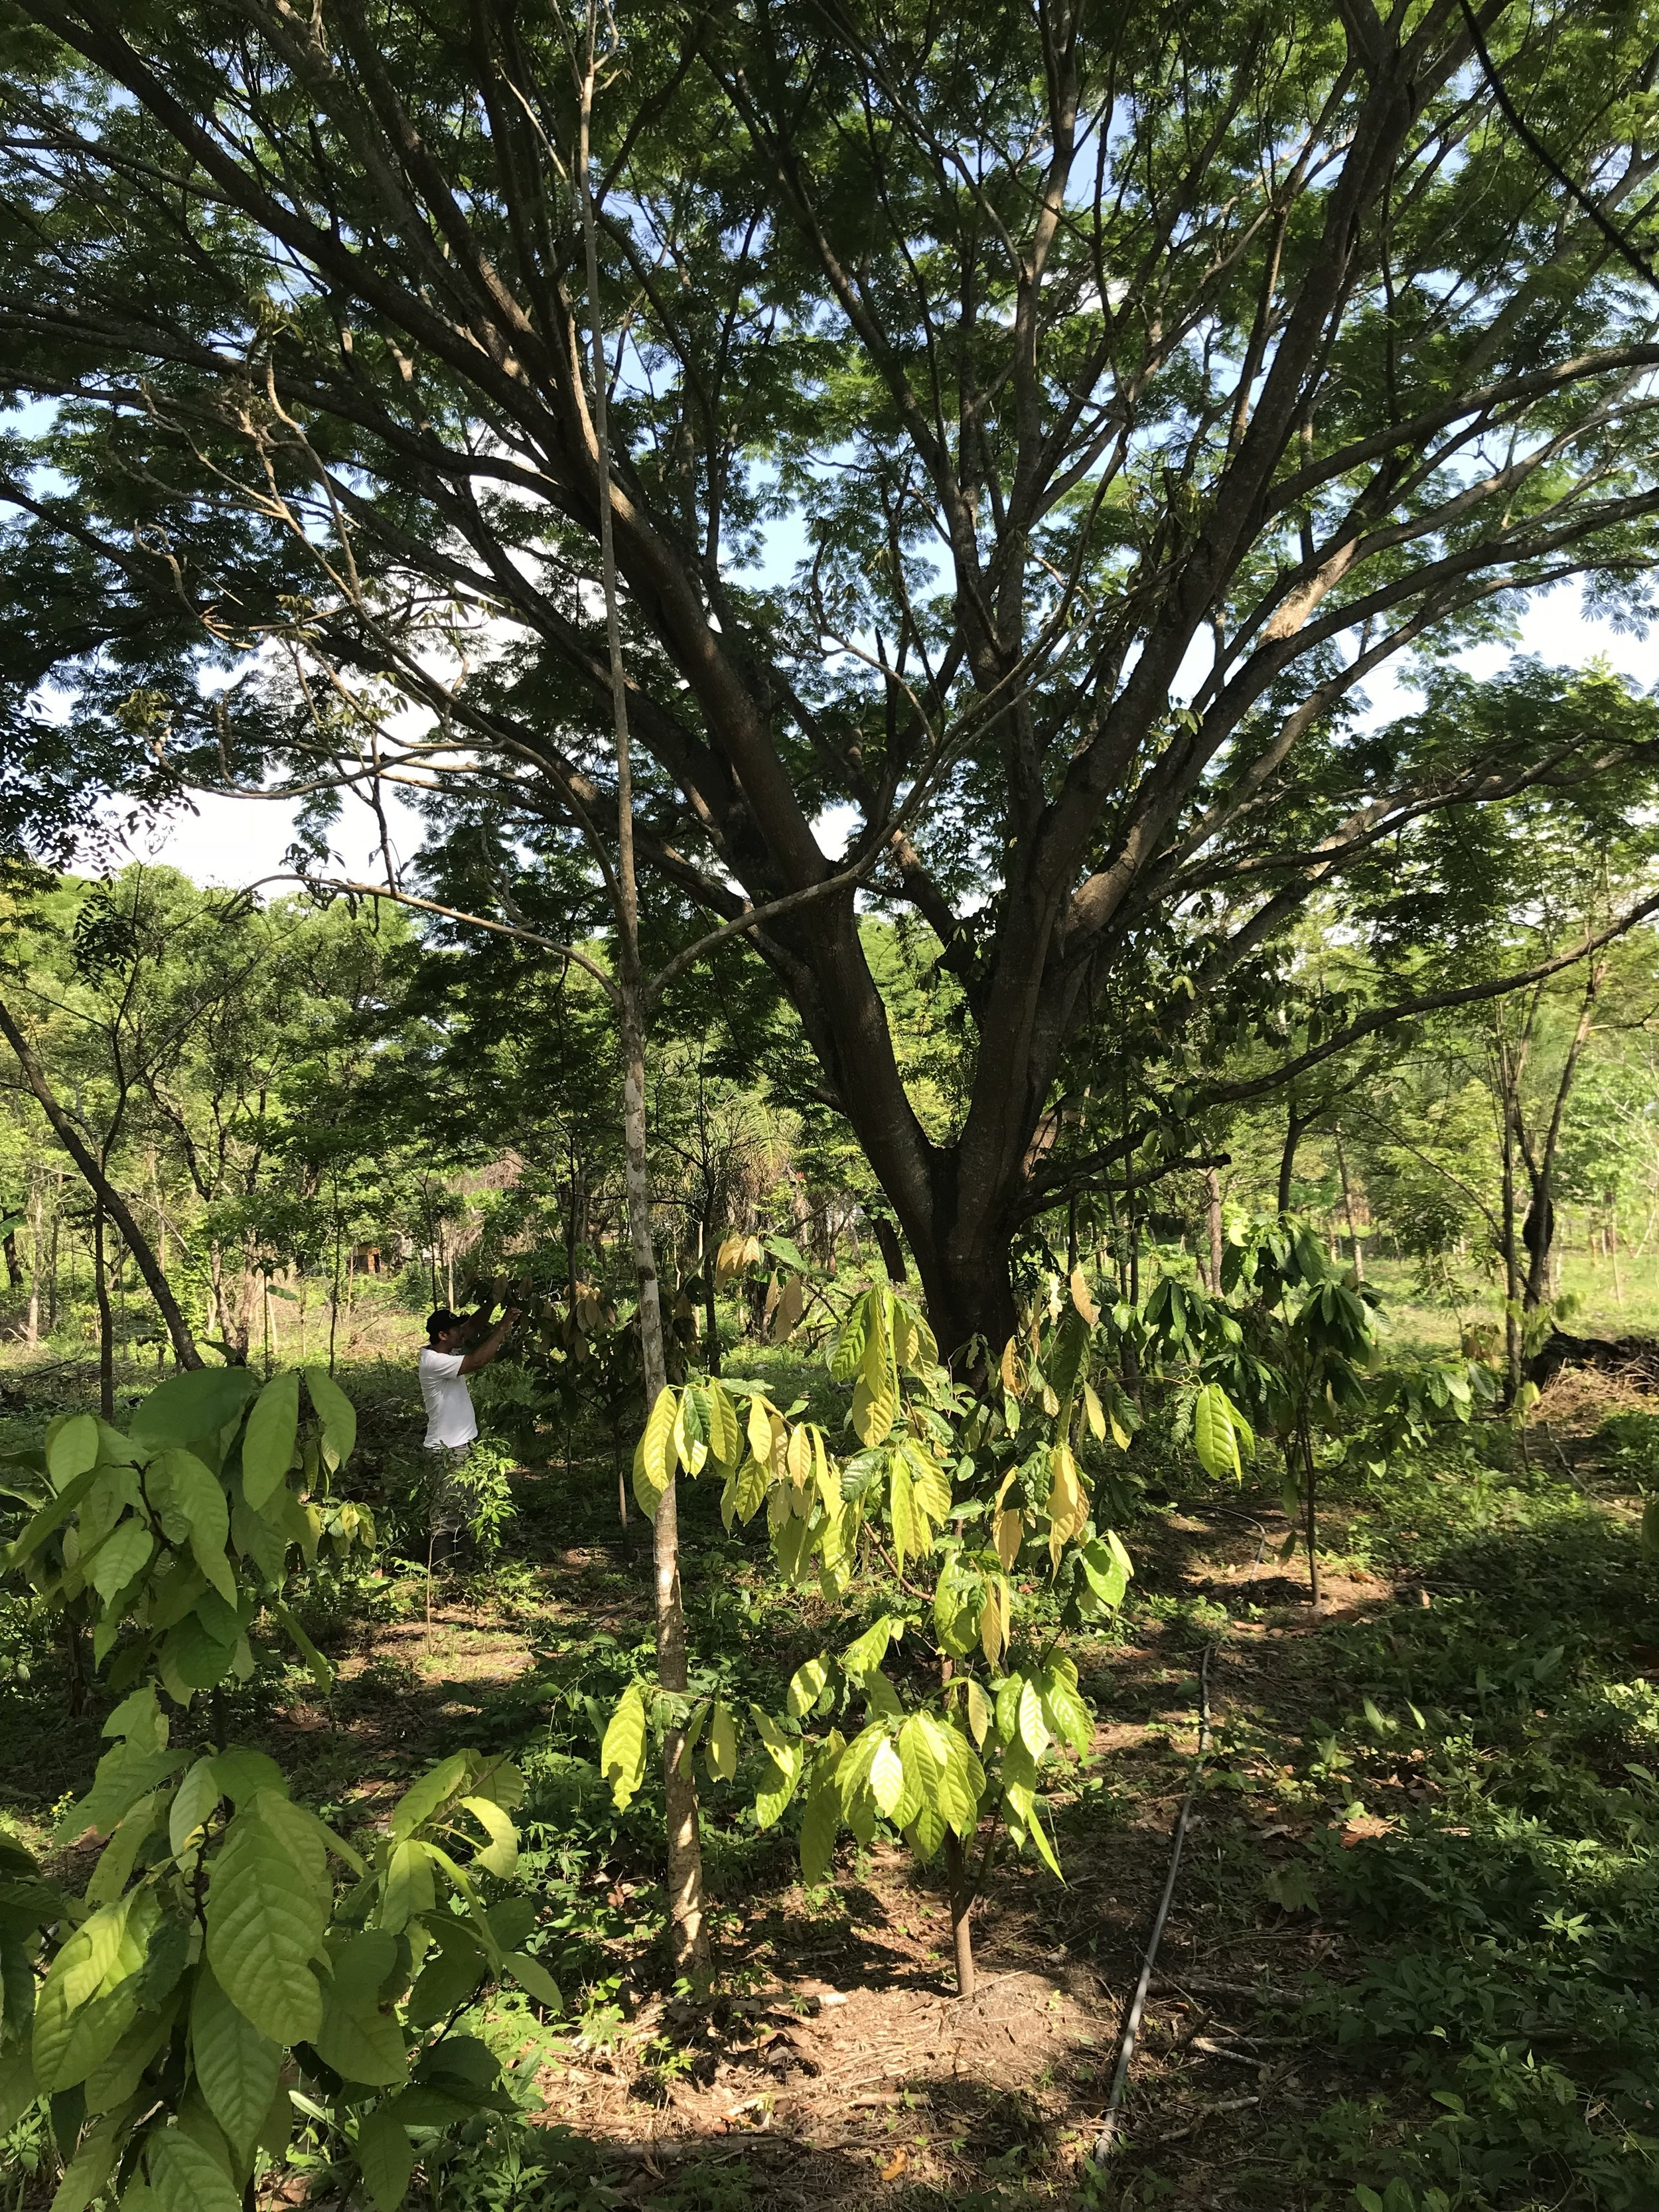 Cacao growing in the shade